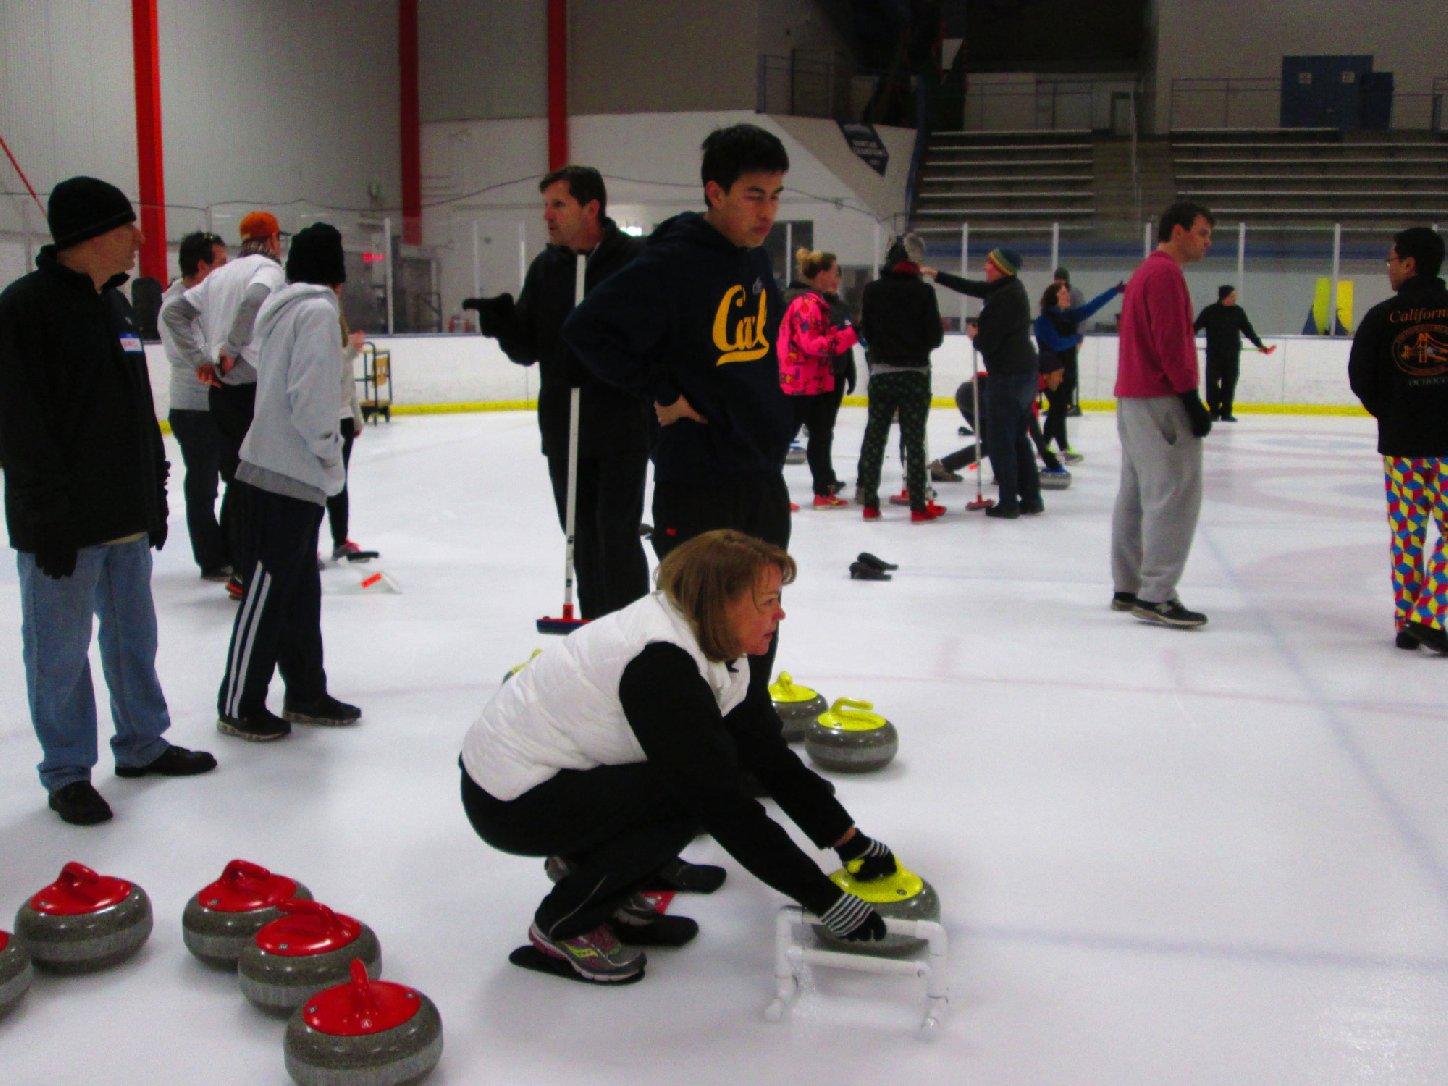 Wannabe Curlers 'Hurry Hard' to Bay Area Curling Club Clinics